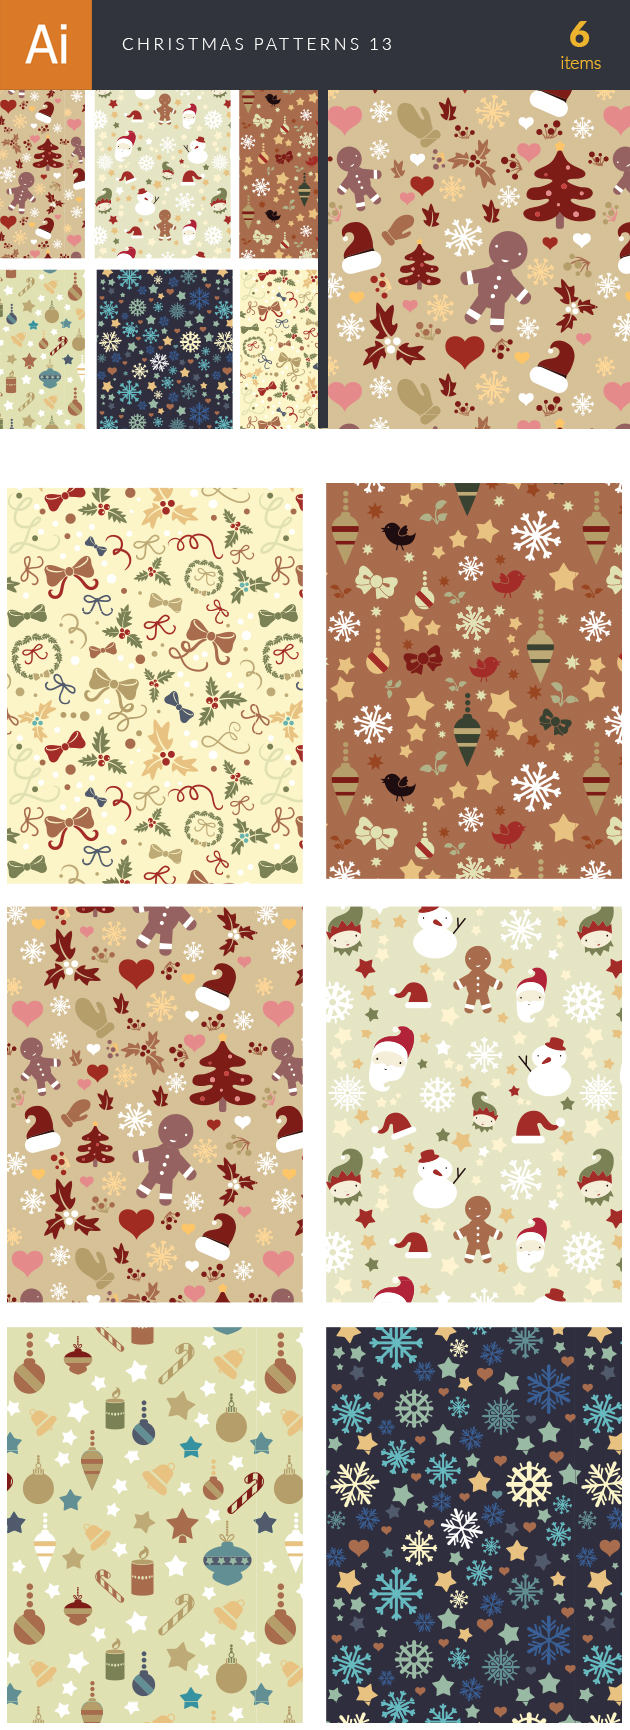 Christmas Vector Patterns Set 13 designtnt christmas vector patterns set 13 vector large